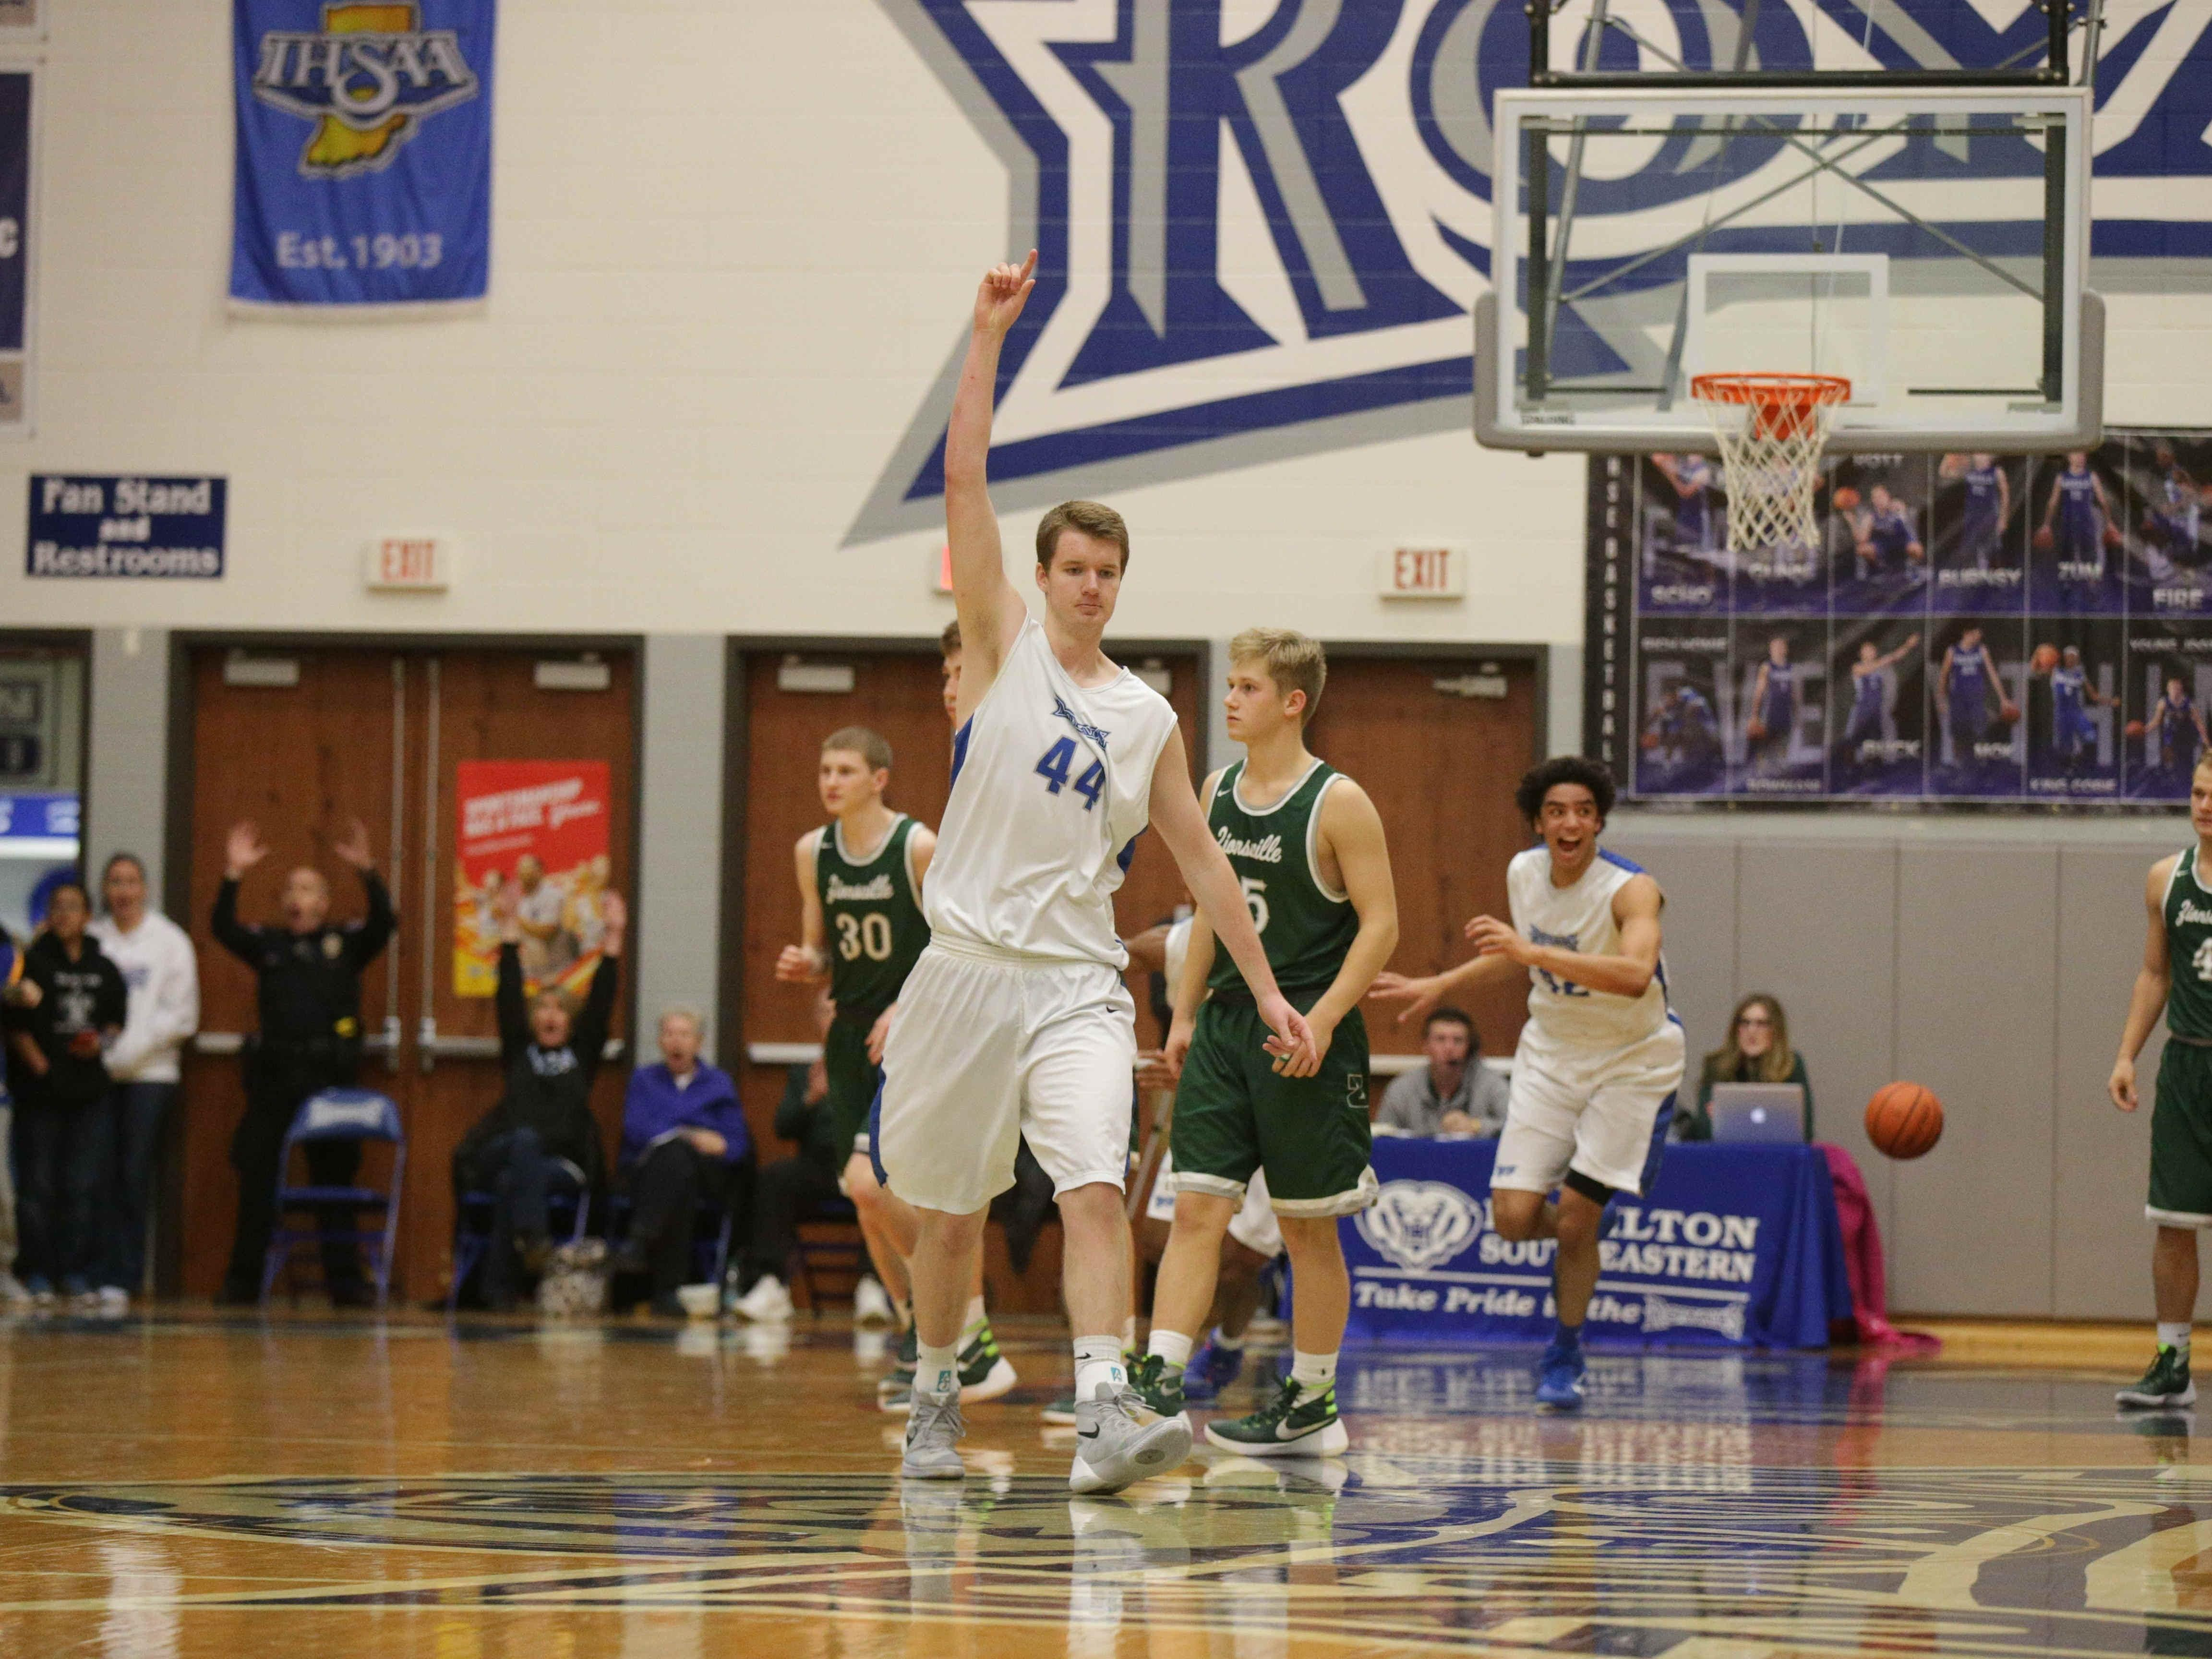 The Royal's #44, Brennan Schofield celebrates after hitting a three point shot at the buzzer for the win, Friday January 22nd, 2016. Hamilton South Eastern VS Zionsville at HSE. Royals win 48-47. #30 Dominick Genco, #5 Jordan Cox, #42 Zach Guzz, #4 Jack Pilcher.